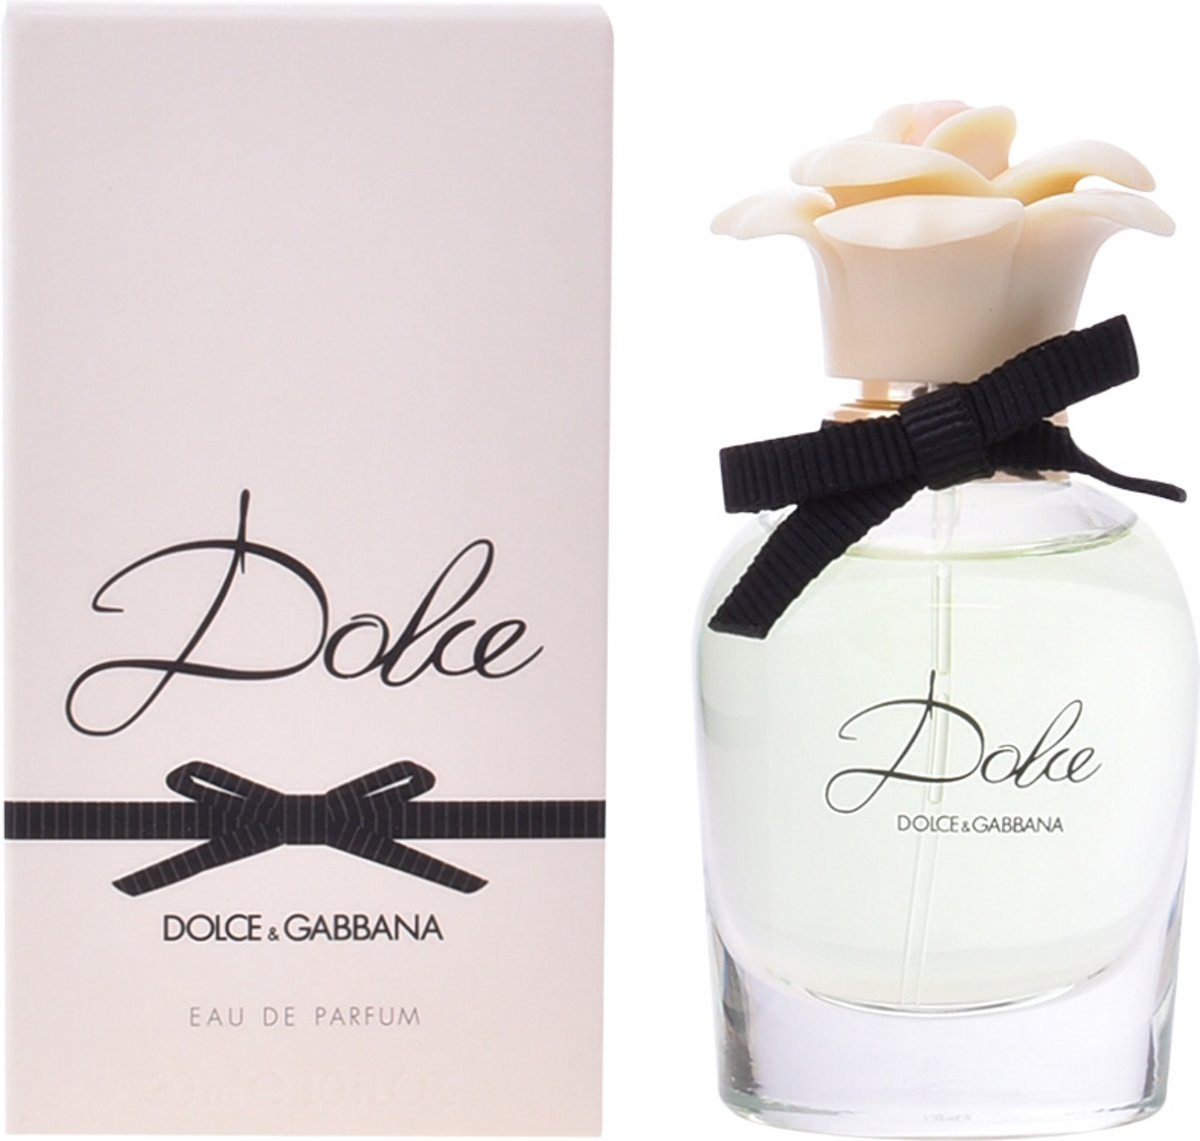 MULTI BUNDEL 3 stuks Dolce and Gabbana Dolce Eau De Perfume Spray 30ml